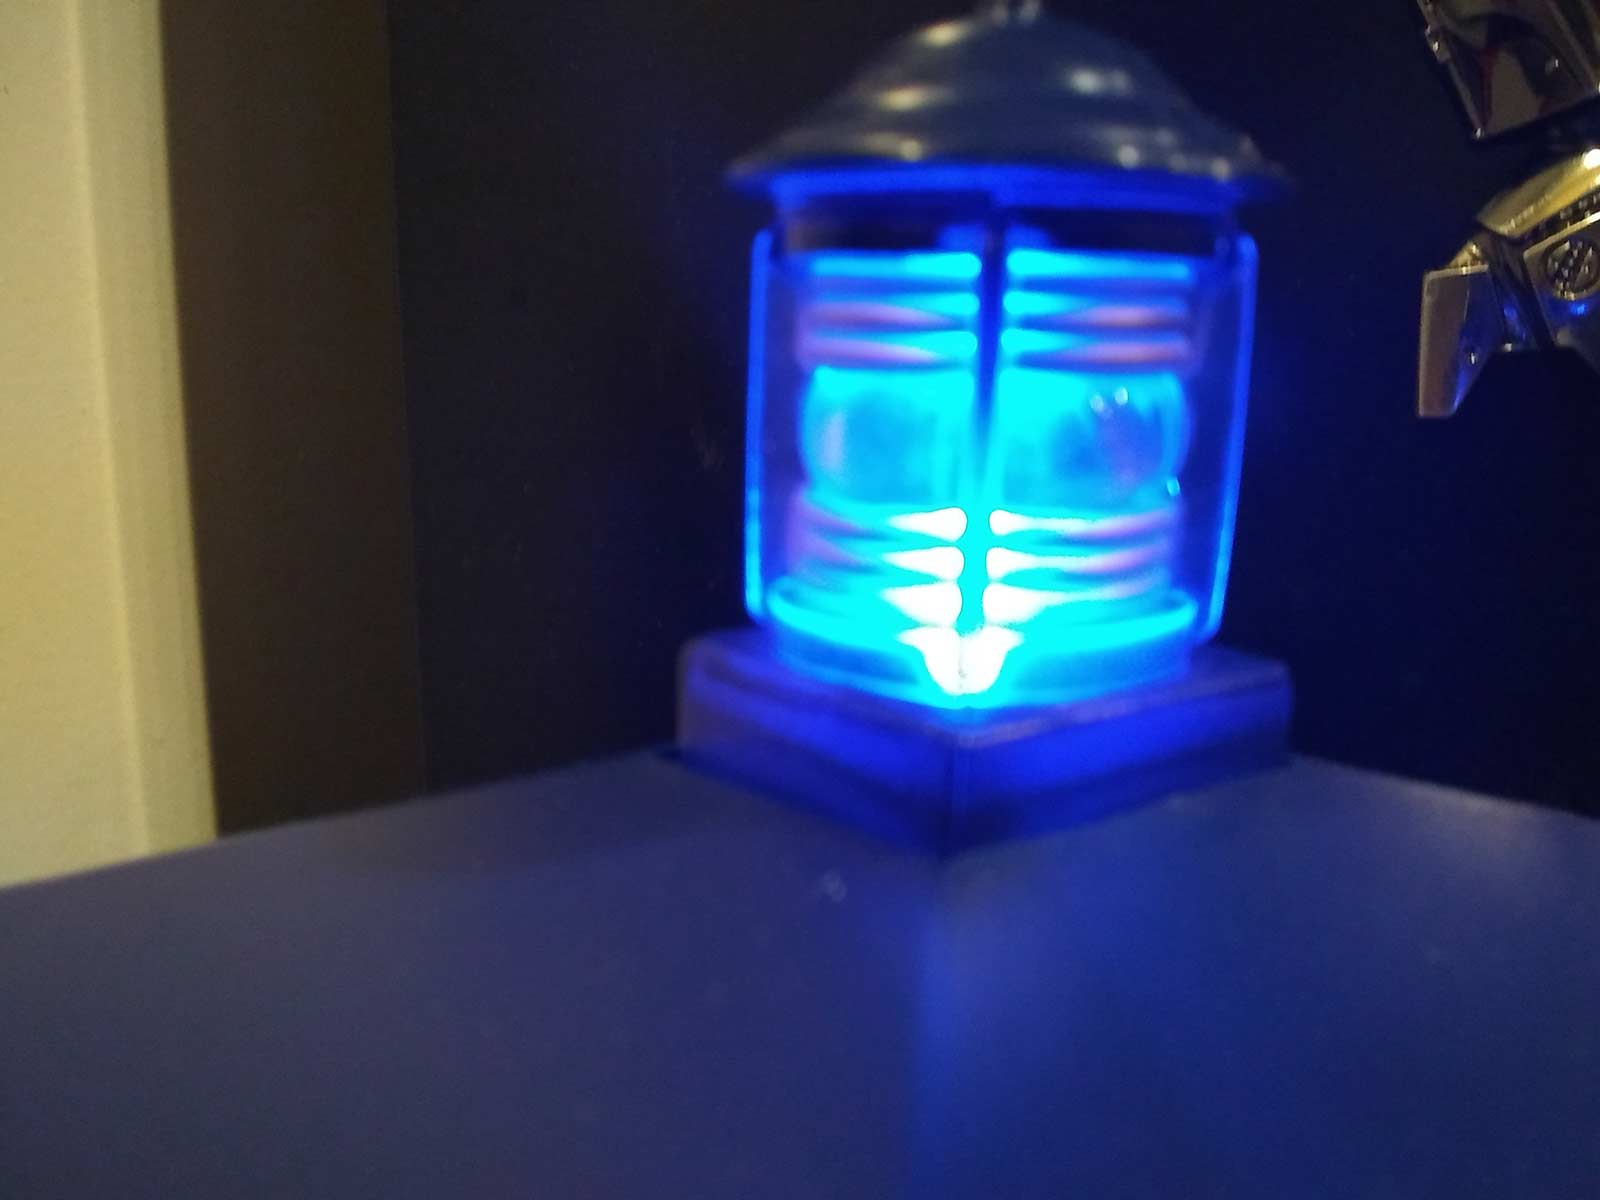 dr who trash can light